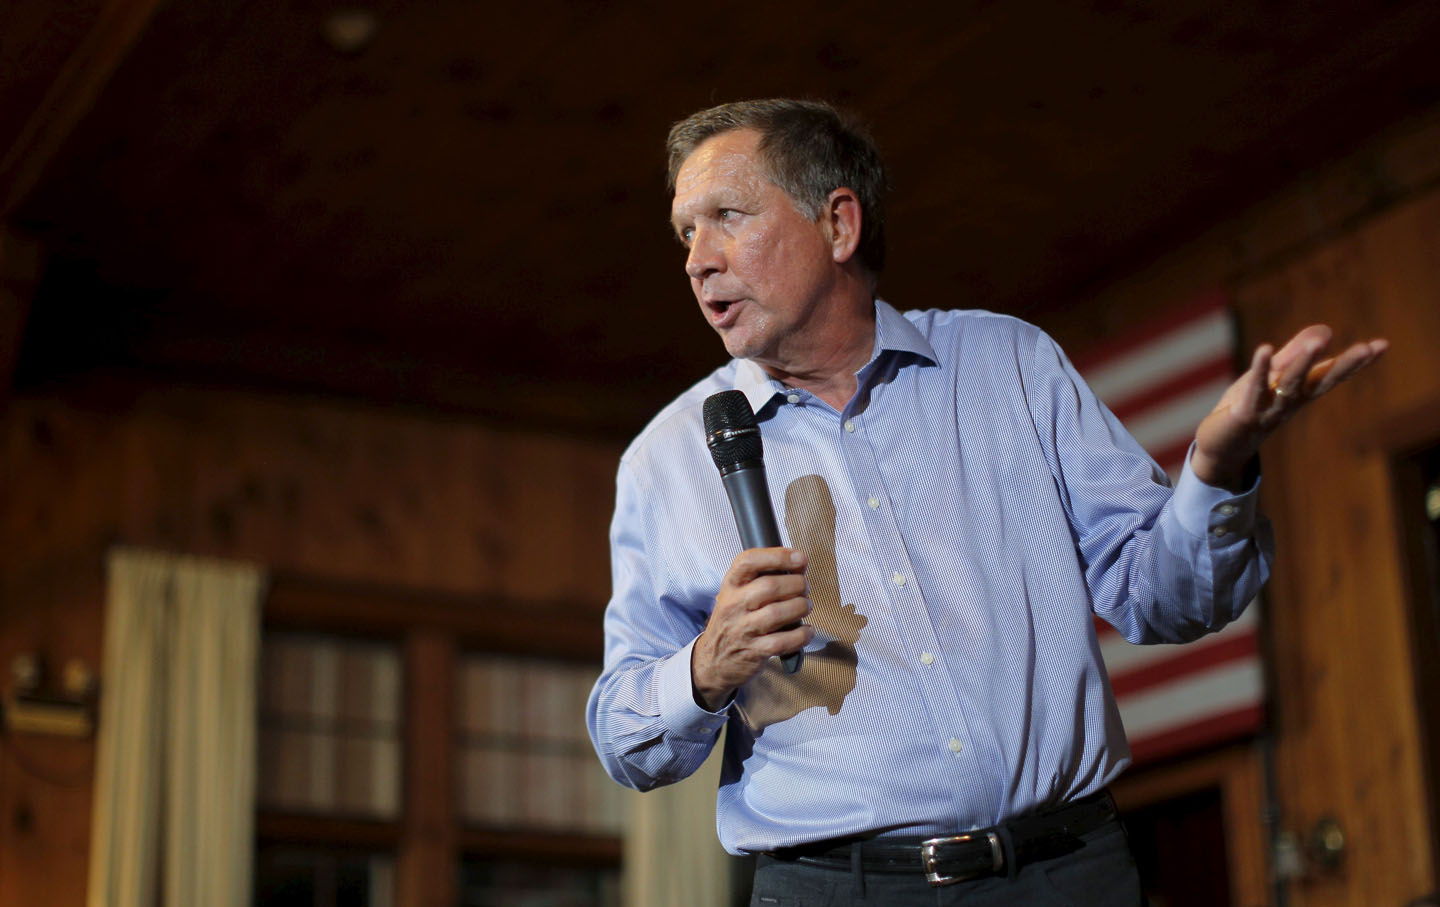 U.S. Republican presidential candidate and Ohio Governor Kasich holds a campaign town hall meeting in Peterborough